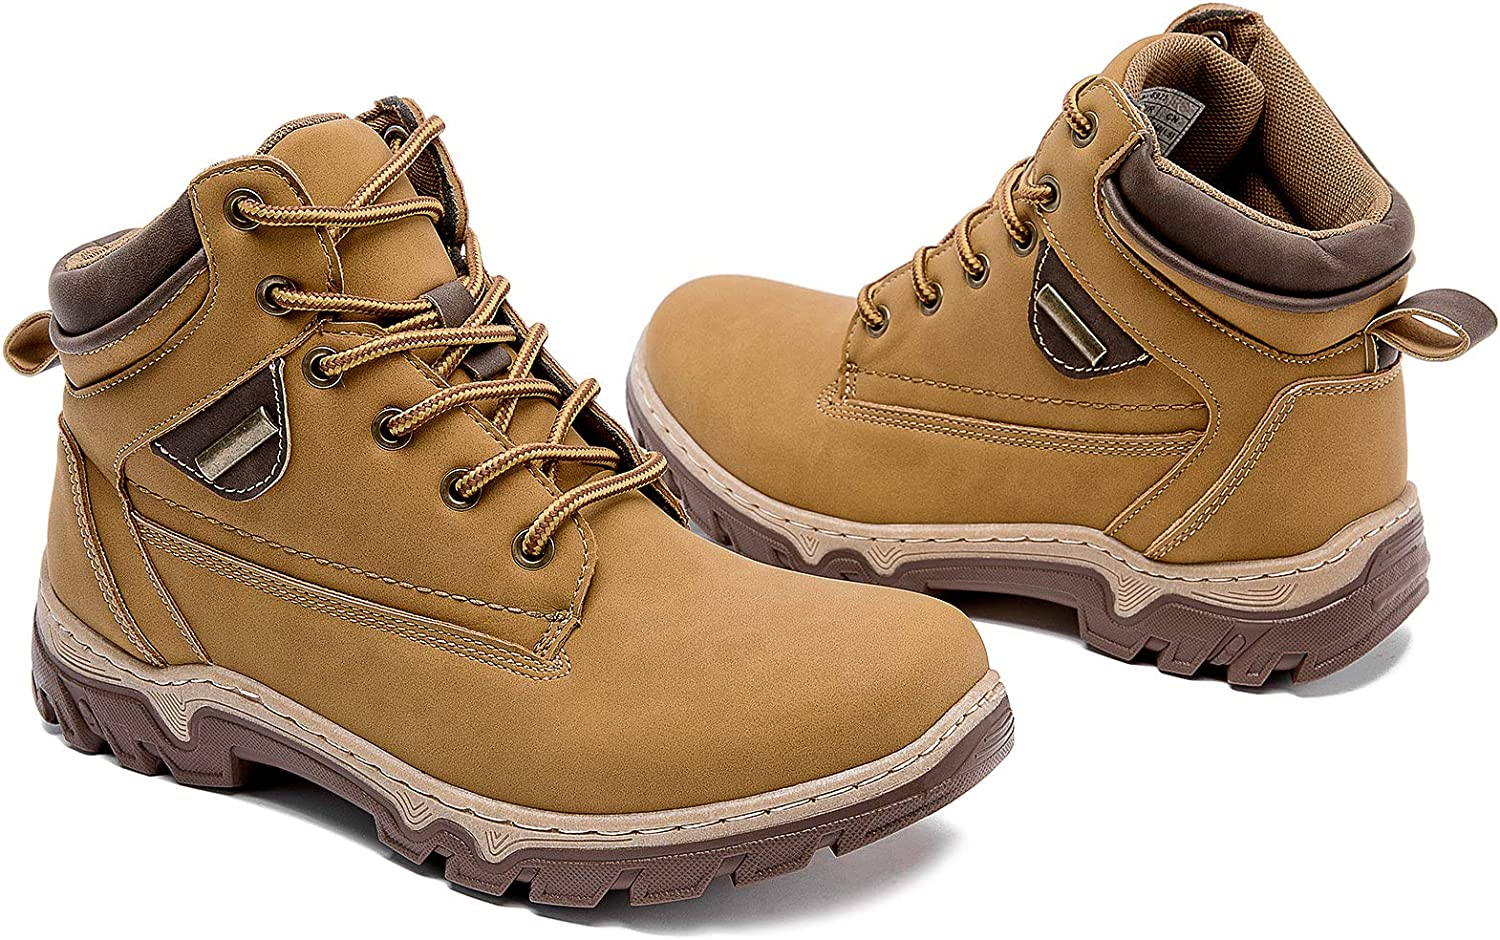 Adokoo Women's Hiking Boots Backpacking